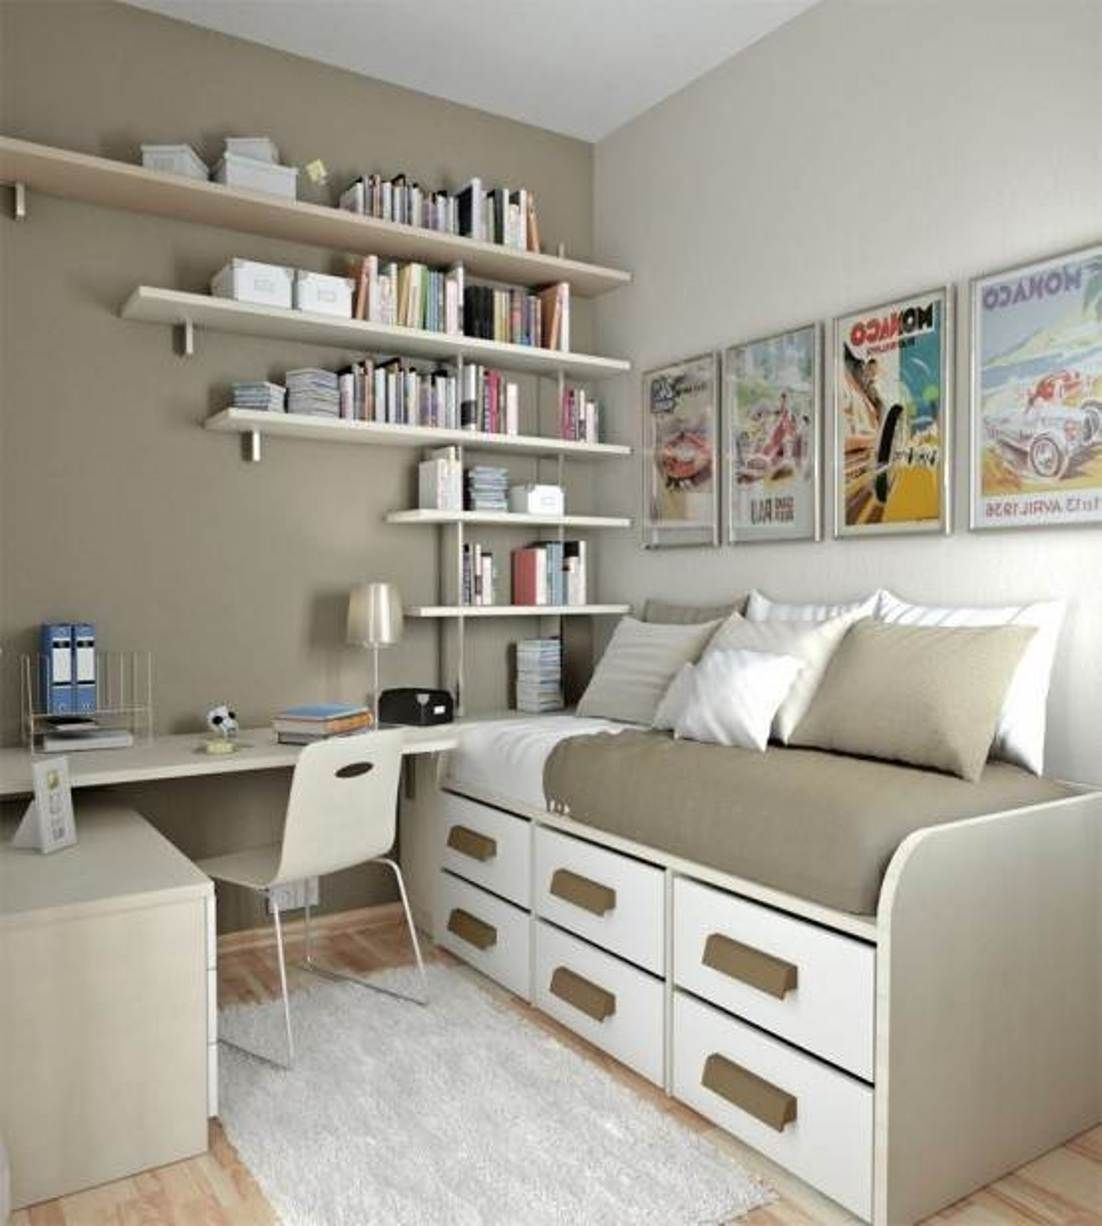 Cool Storage Ideas For Small Bedrooms  Small Bedroom  Pinterest Alluring Storage Ideas For Bedrooms Decorating Inspiration